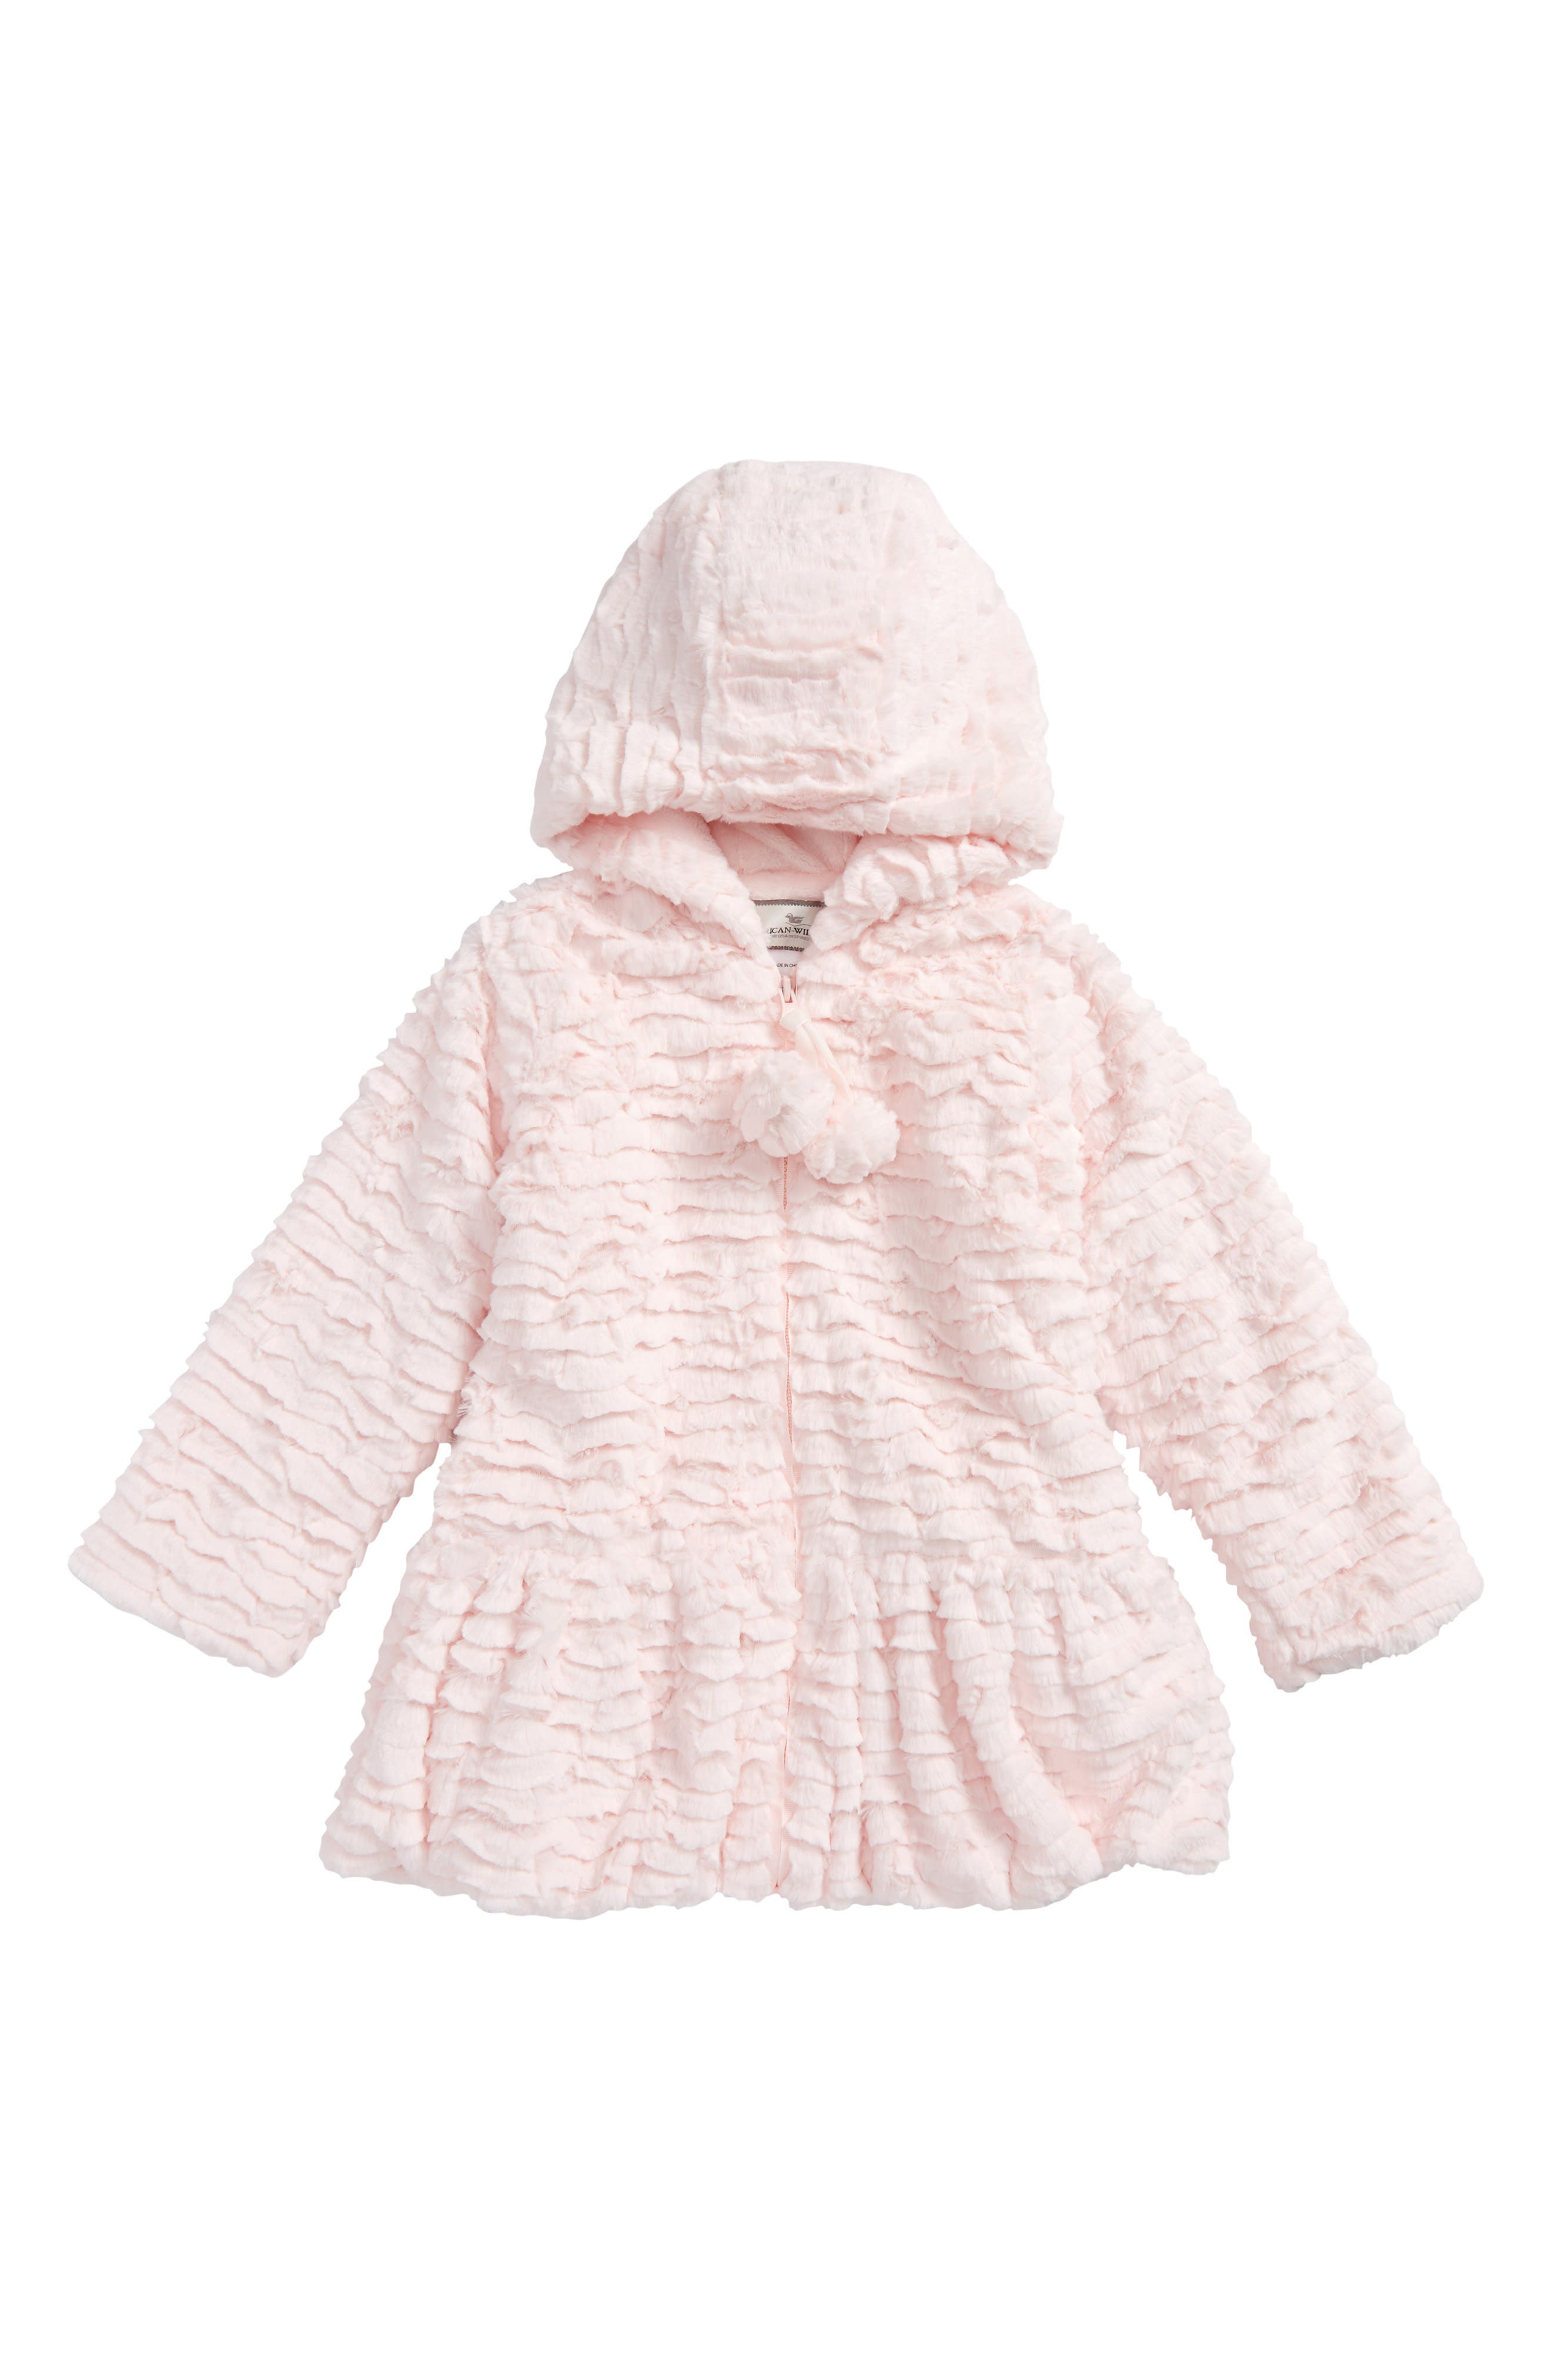 Widgeon Faux Fur Hooded Peplum Coat (Toddler Girls & Little Girls)